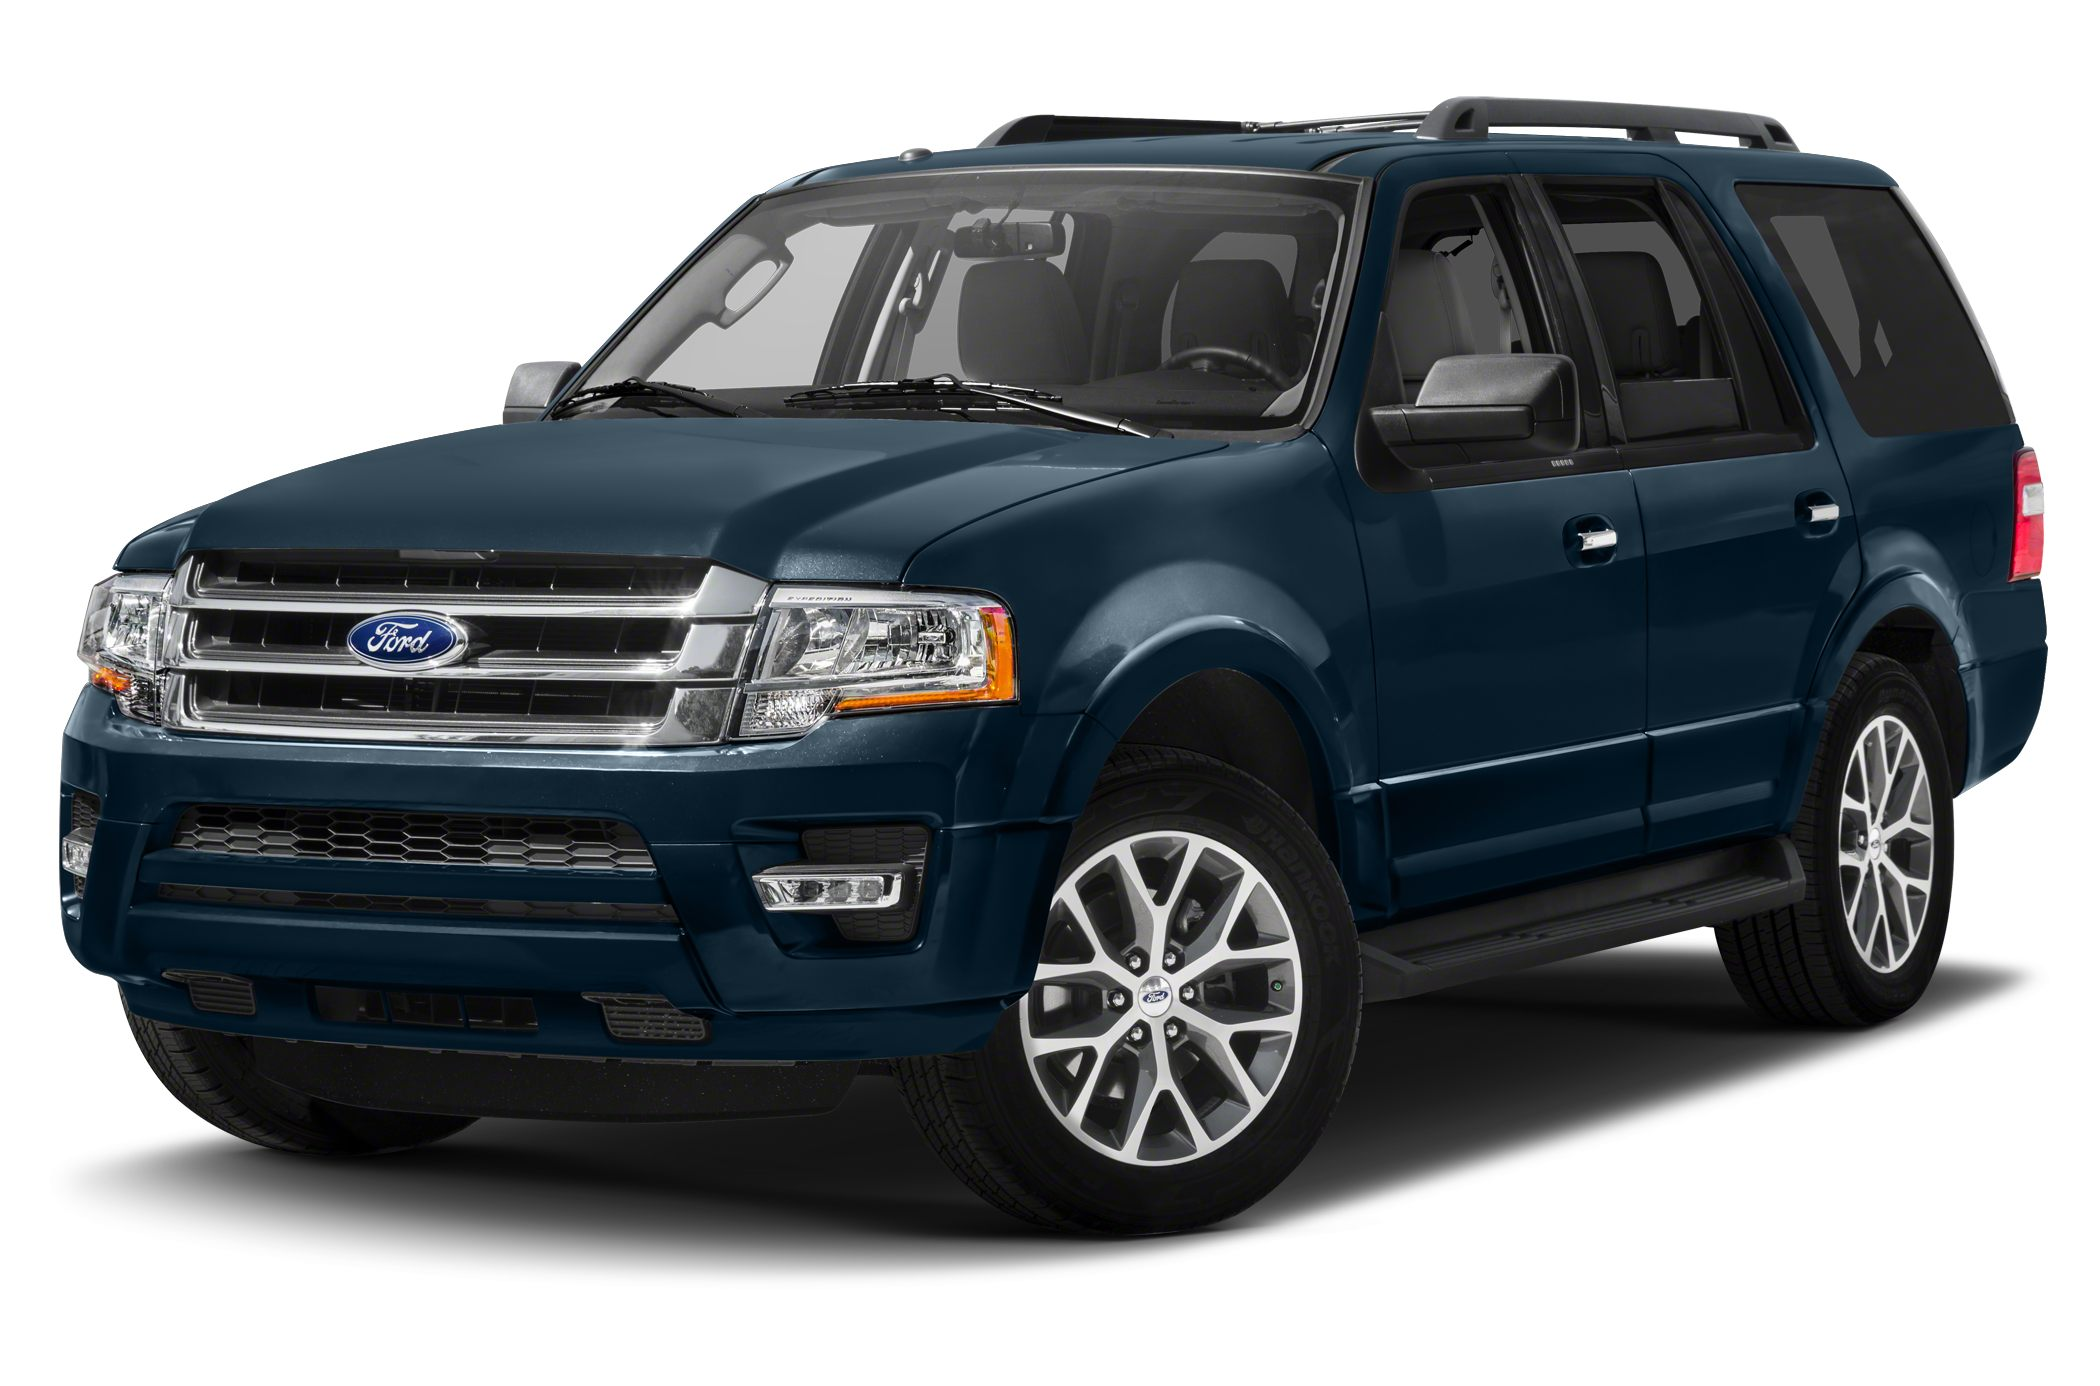 2015 Ford Expedition XLT FORD CERTIFIED Pre-Owned means you get a 1-year 120000 mile limited comp